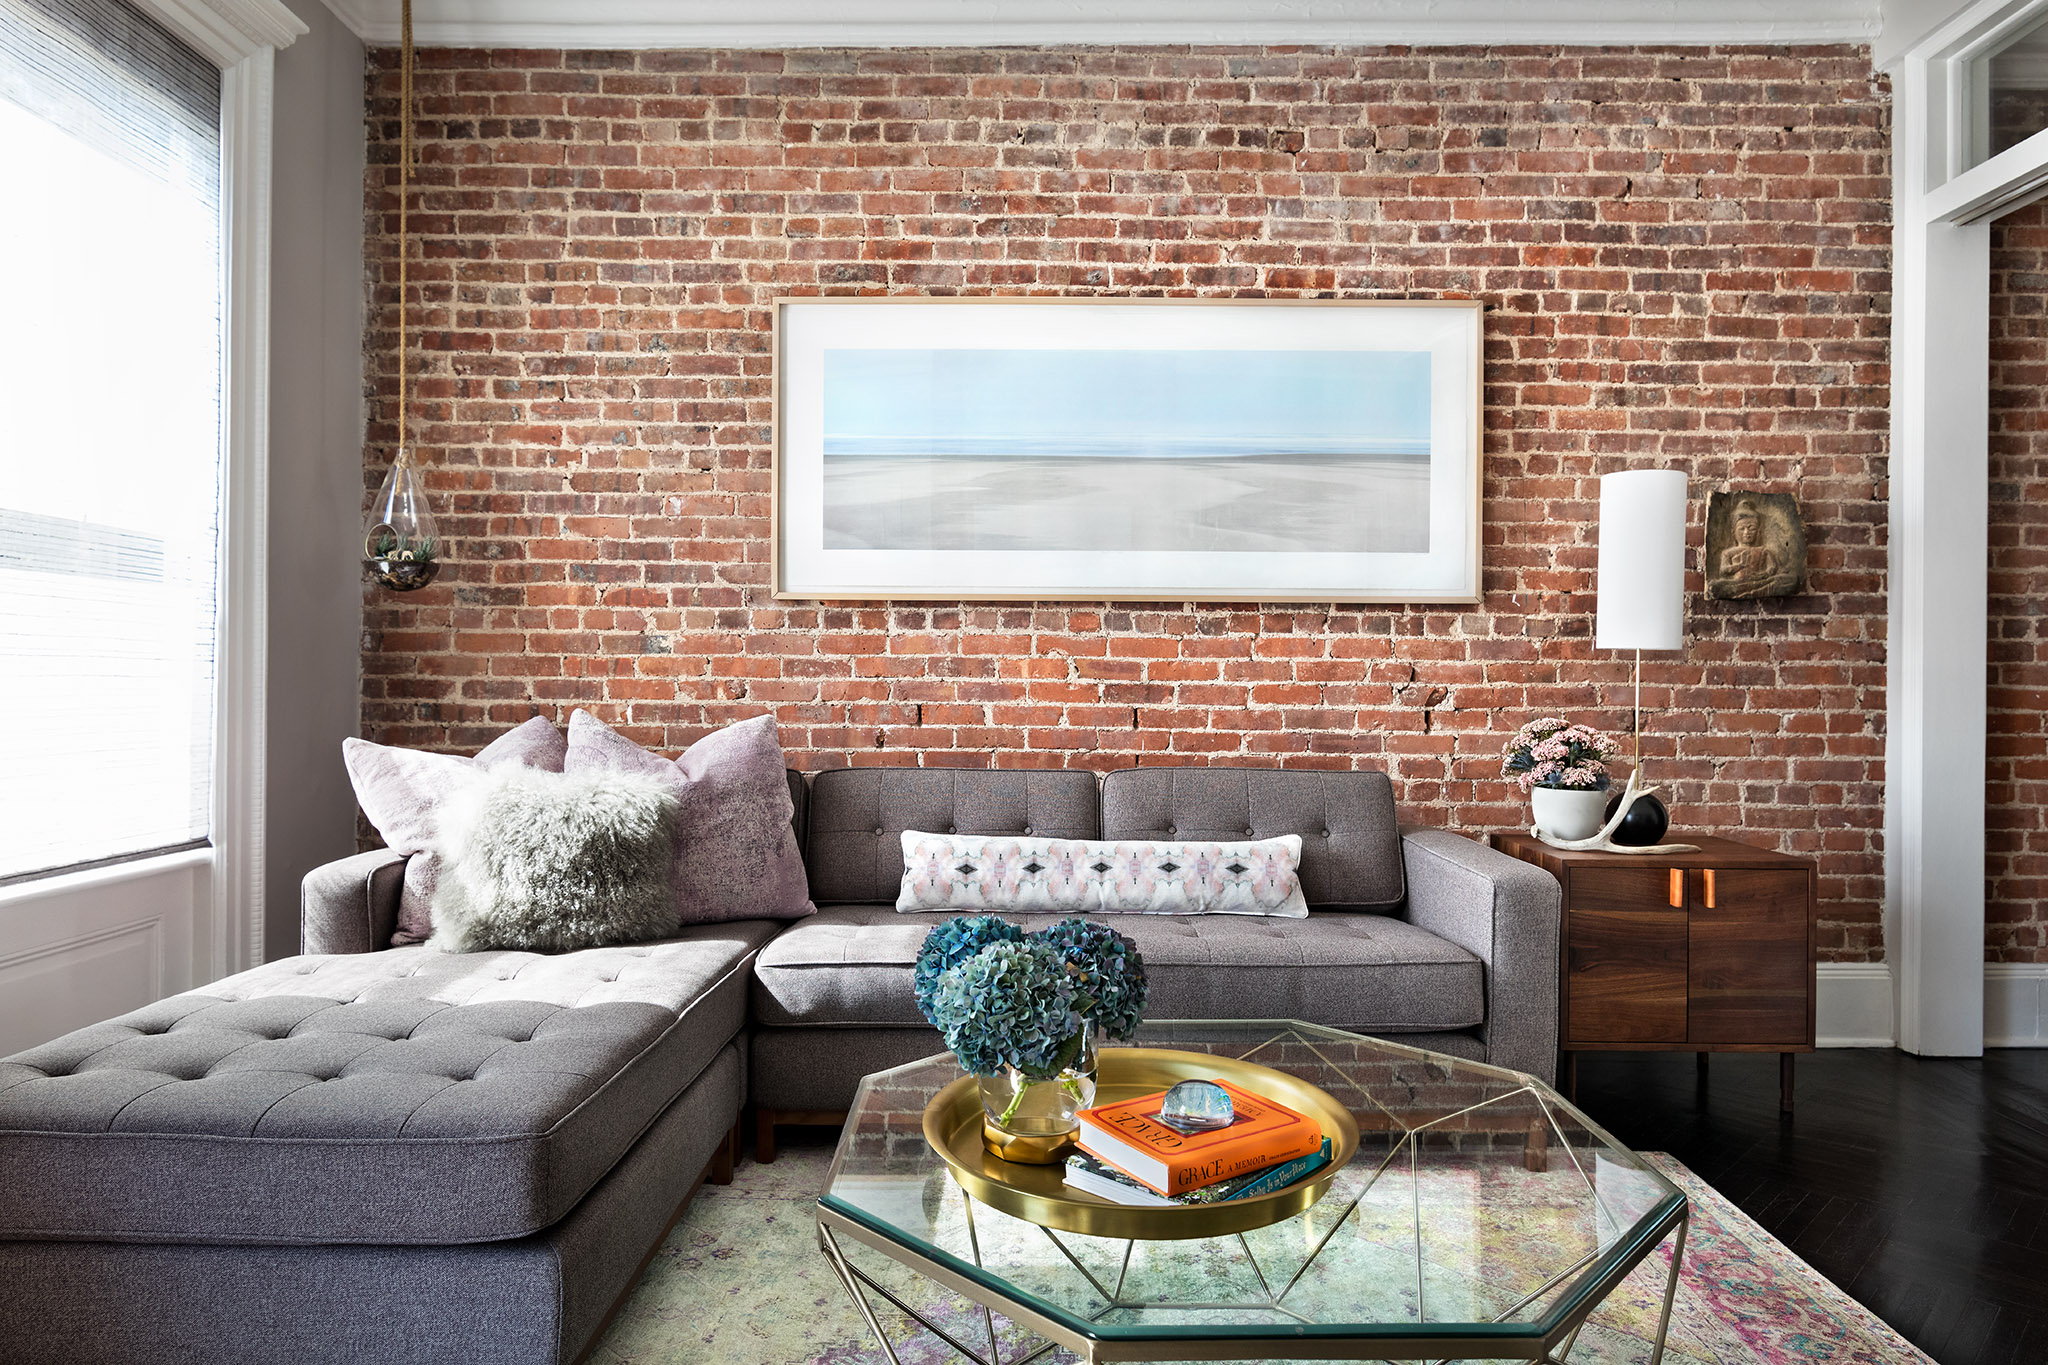 Exceptionnel Feather Raises $3.5M To Rent Furniture To Millennials